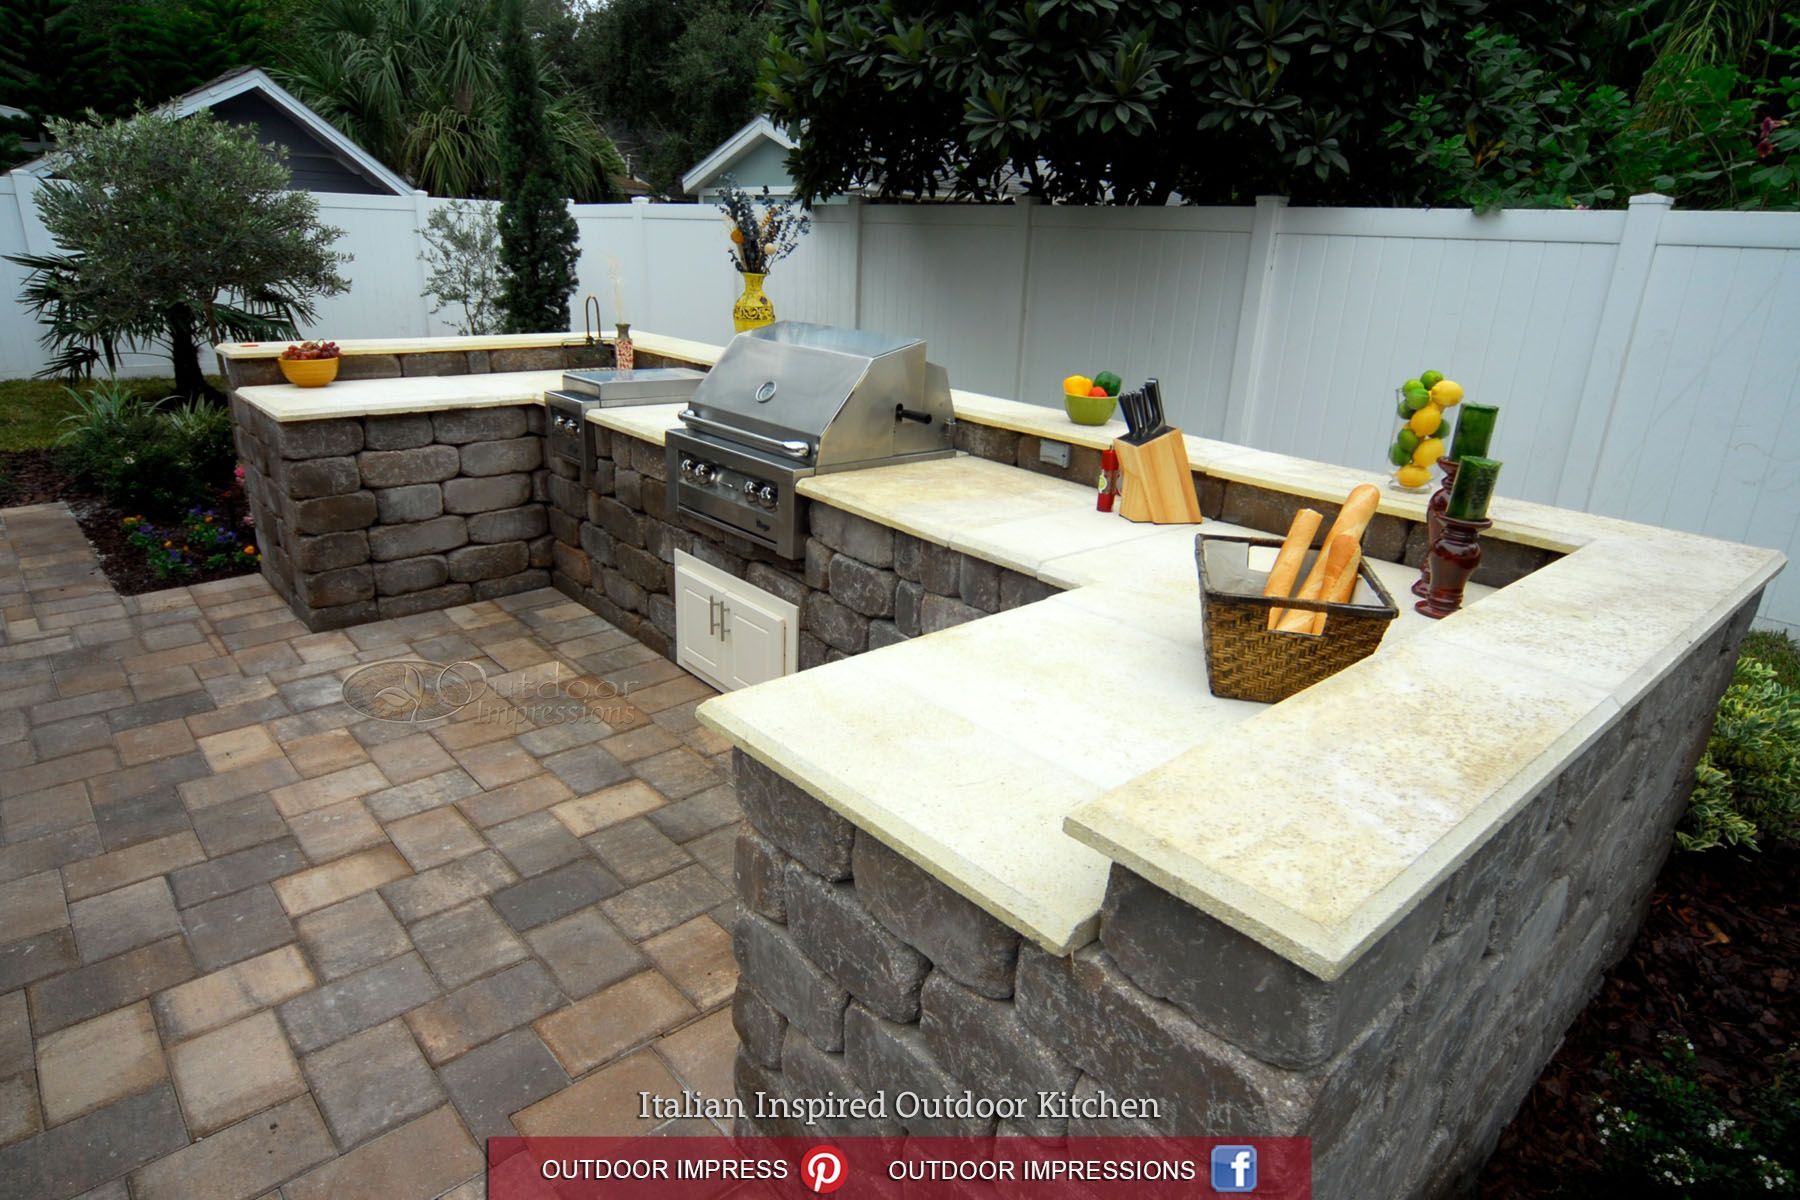 Italian Outdoor Kitchen Yard Crashers Fischer Italian Inspired Outdoor Kitchen Angled